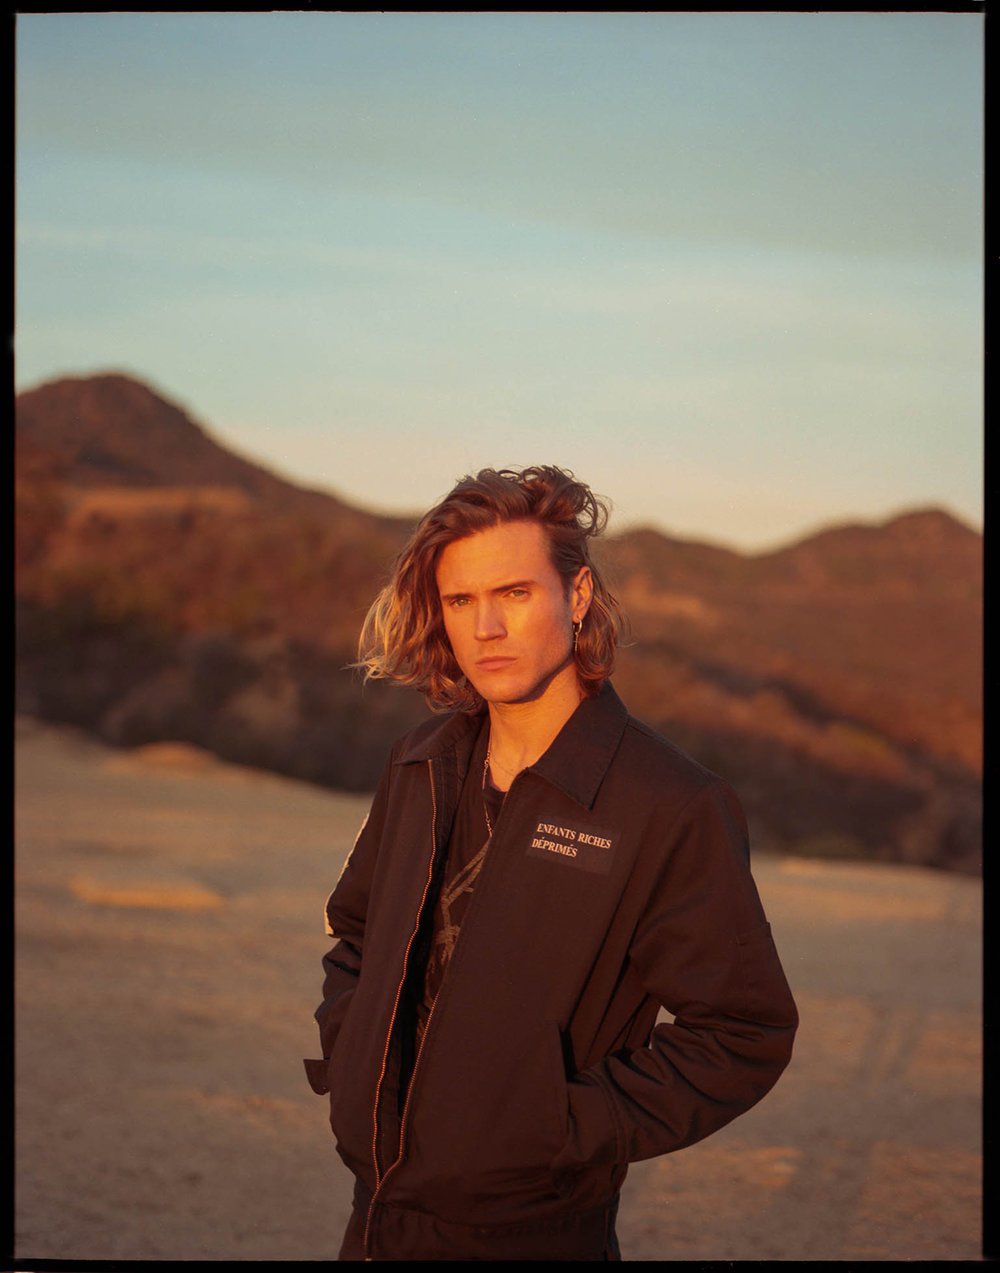 Dougie Poynter, Damaged Magazine